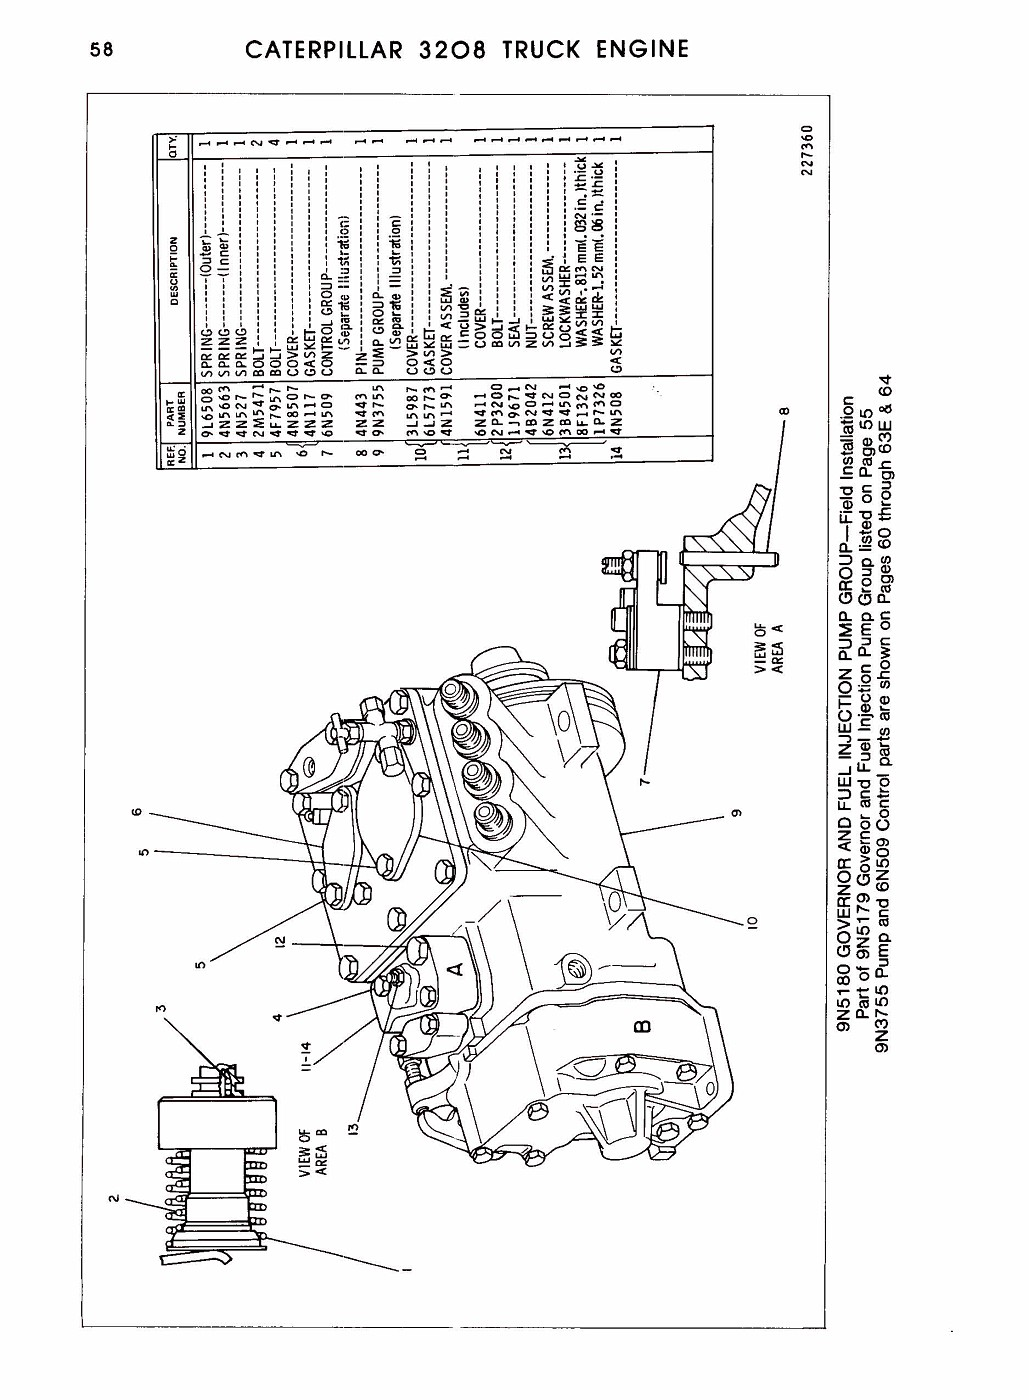 Motor Caterpillar Manual